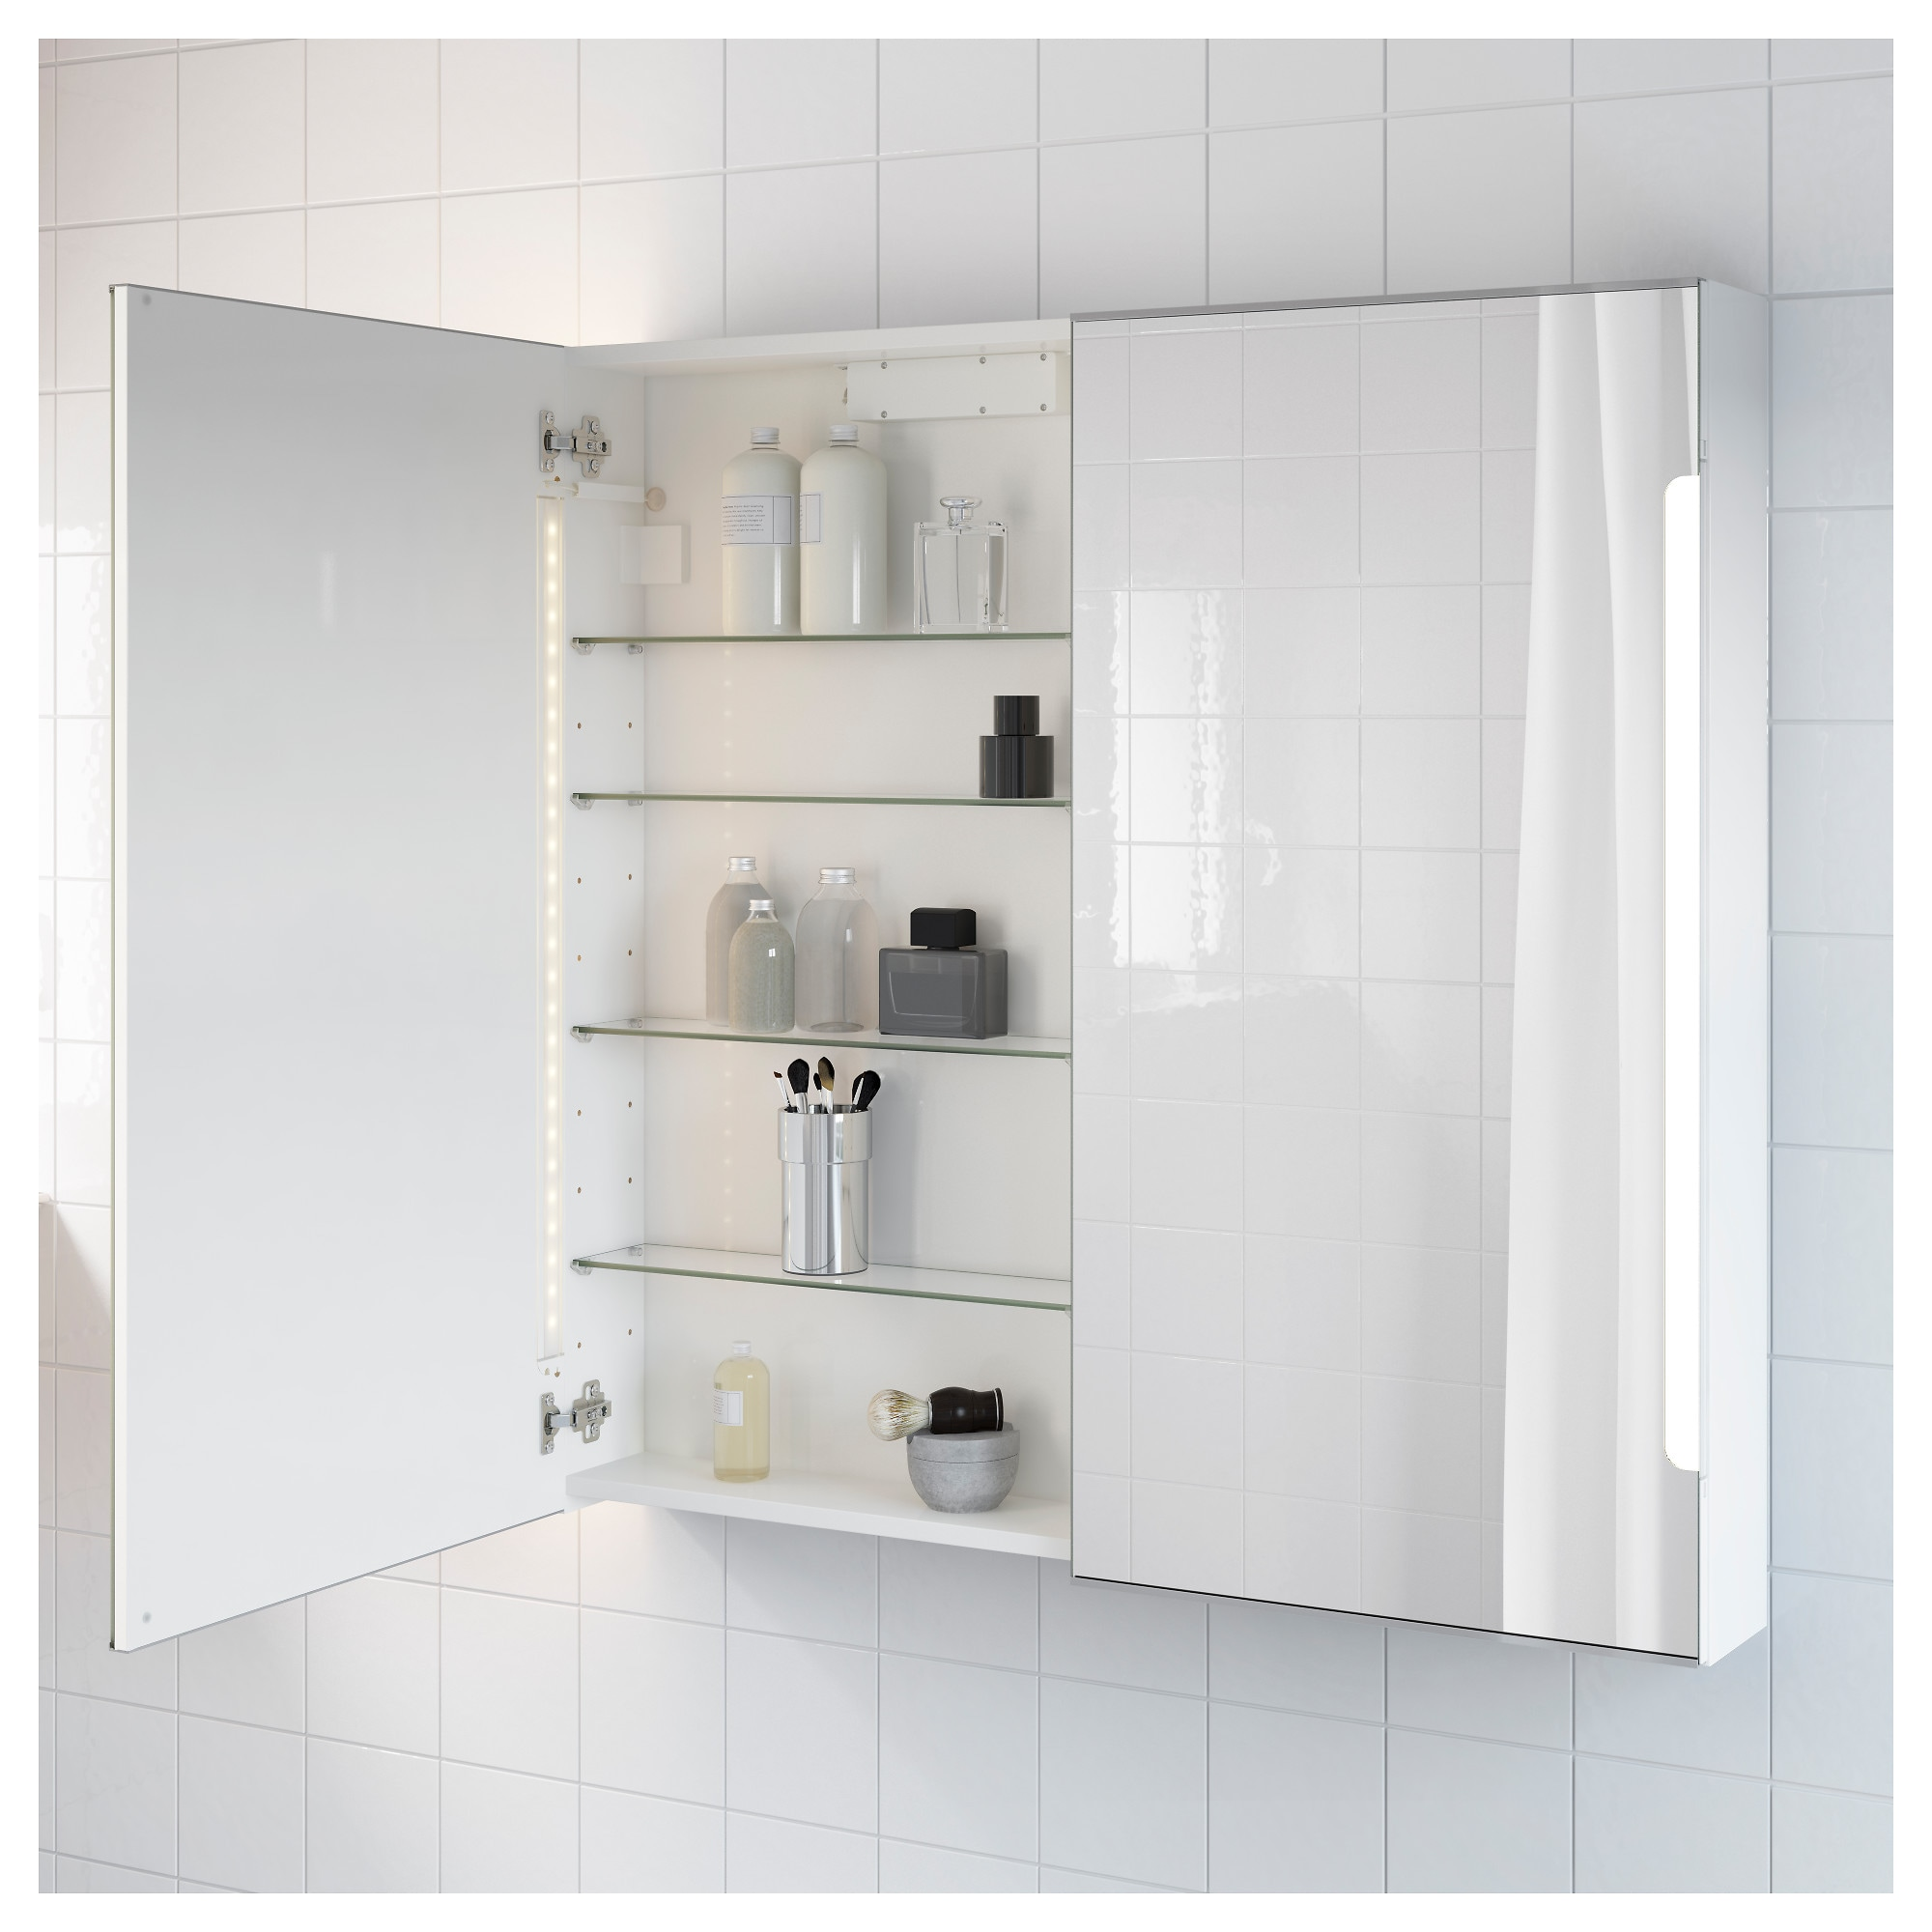 STORJORM Mirror Cabinet W/2 Doors U0026 Light   IKEA